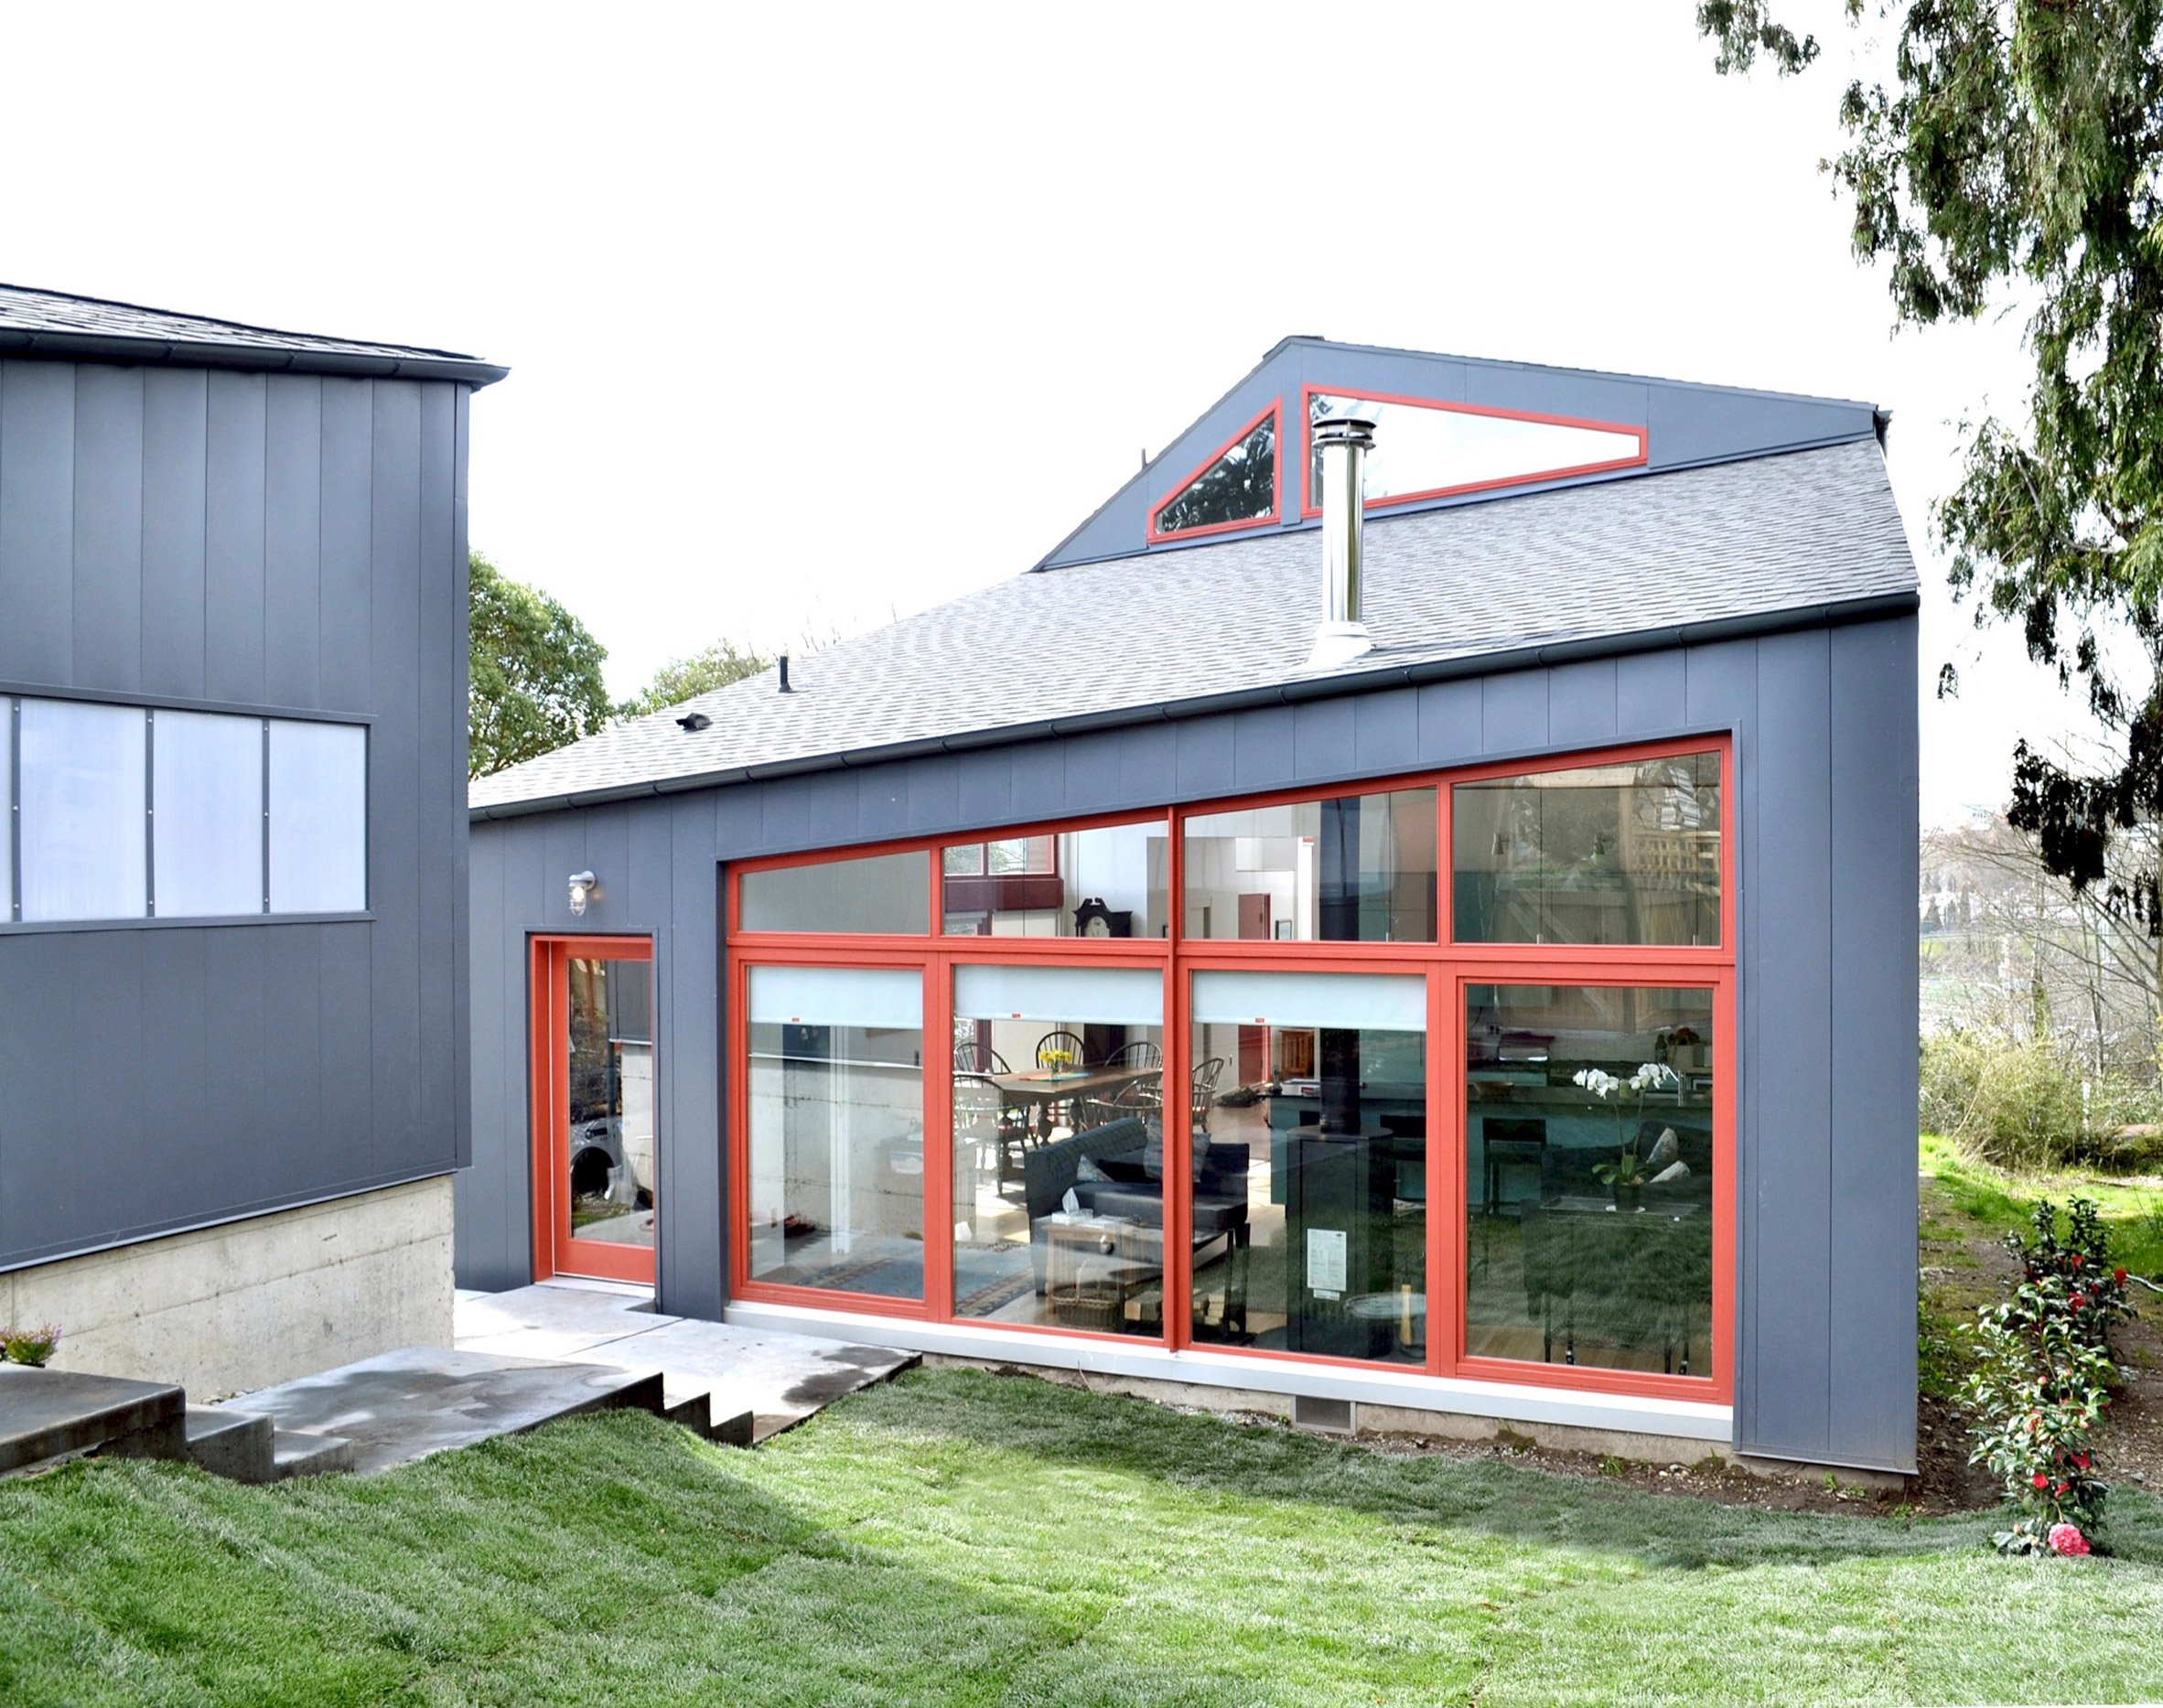 Red window frames accent angular Seattle house by Stettler Design